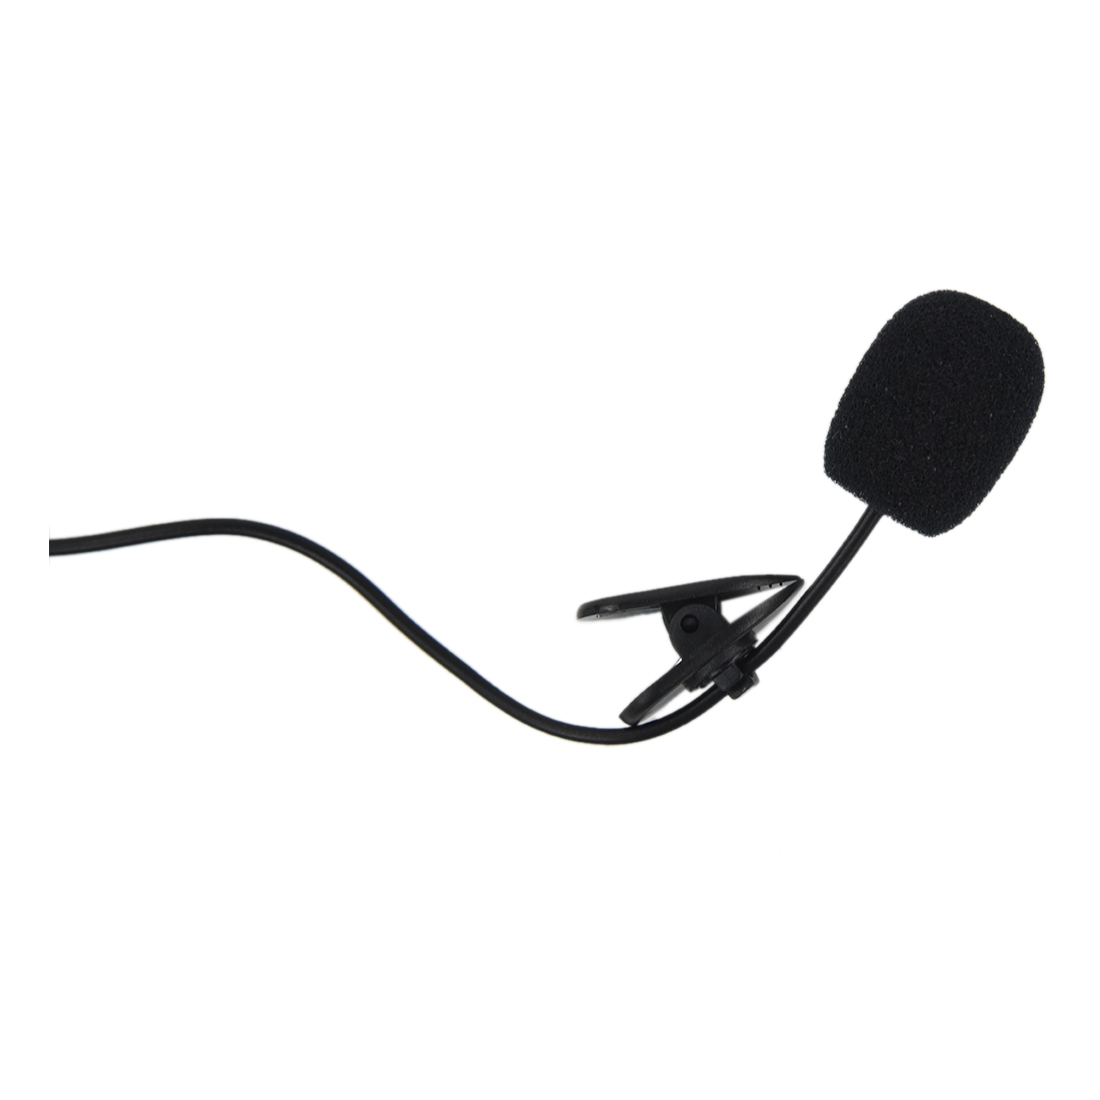 Hands Clip On Lapel Mic Microphone Head Mounted Microphone